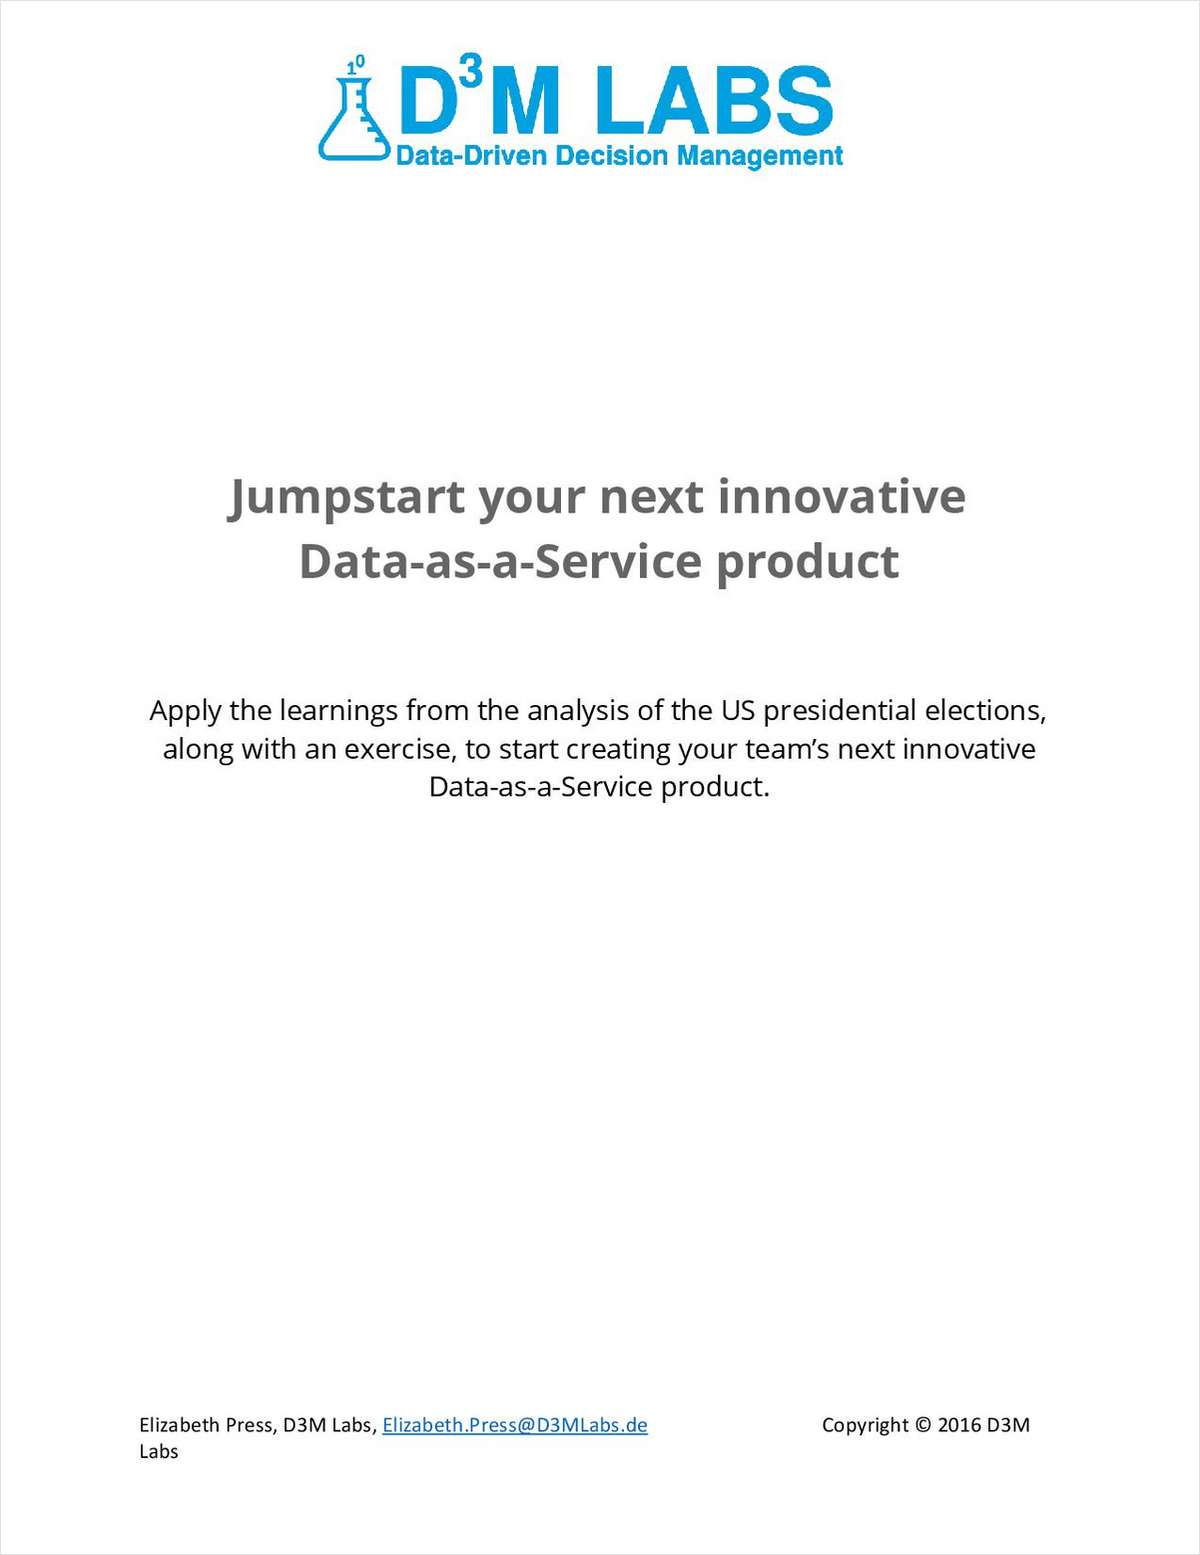 D3M Labs Data-as-a-Service Hacks For Creating A Successful Data Product